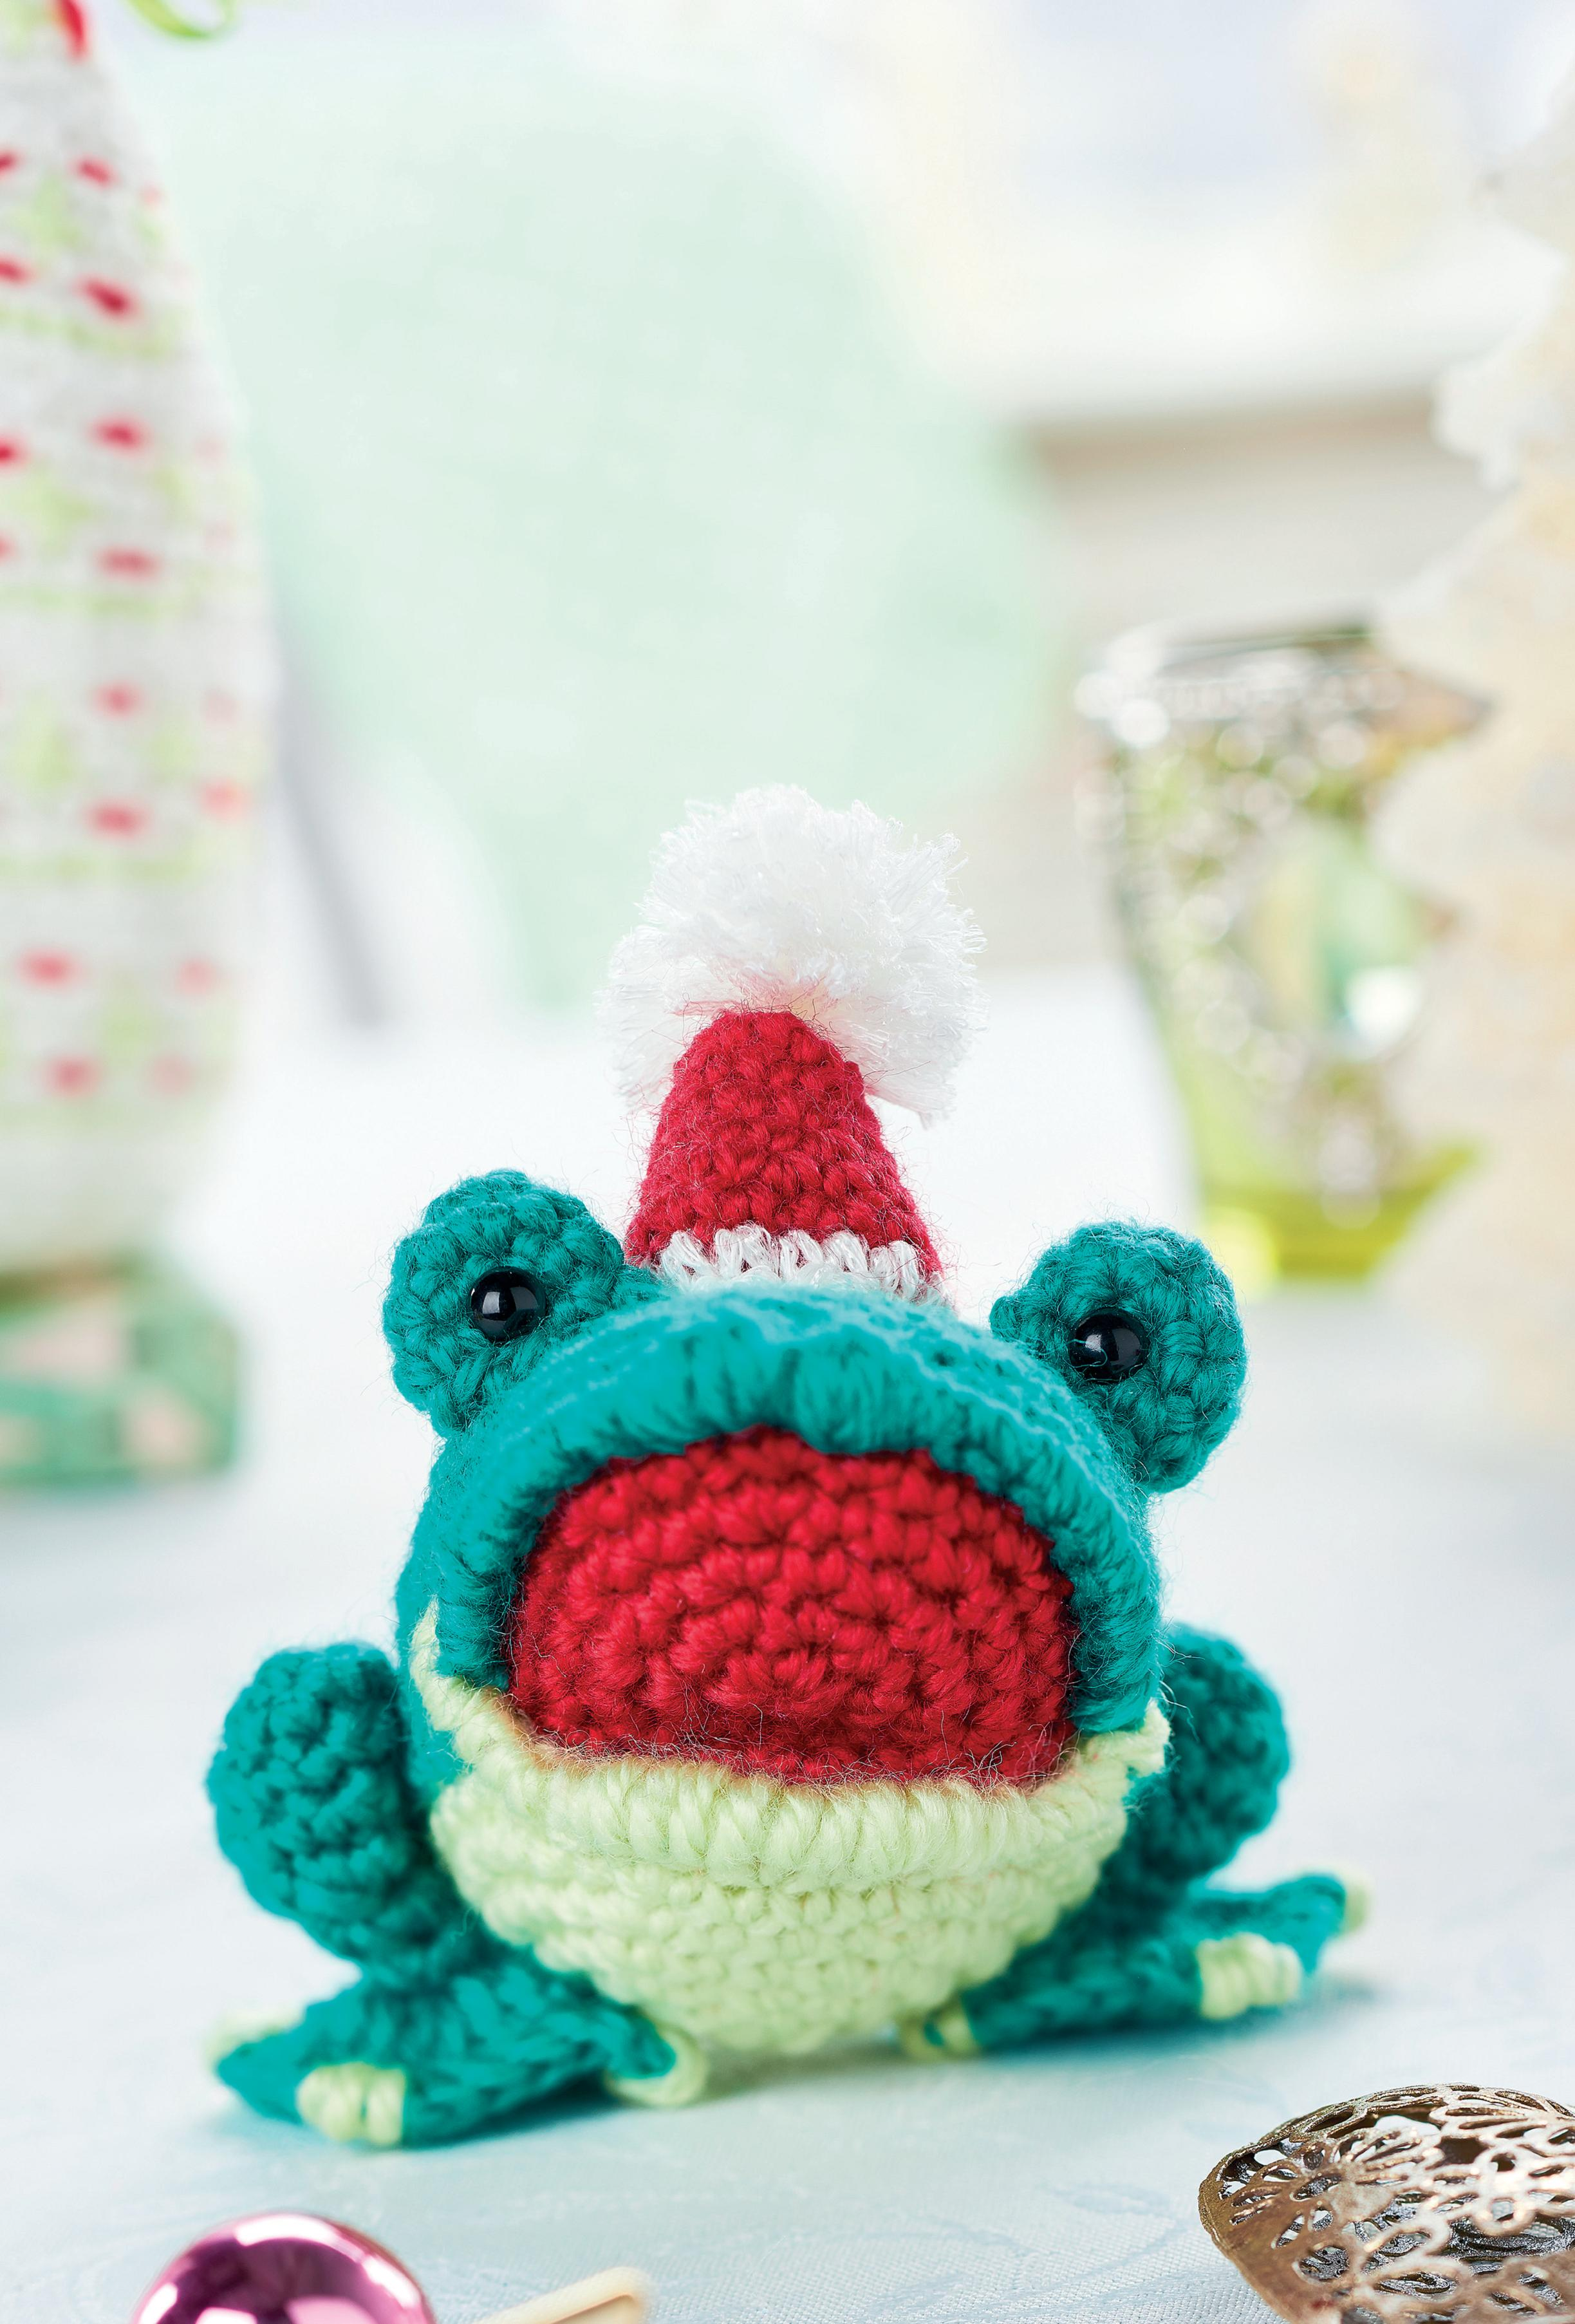 Amigurumi Free Patterns Blog : Amigurumi Christmas frog Crochet Pattern